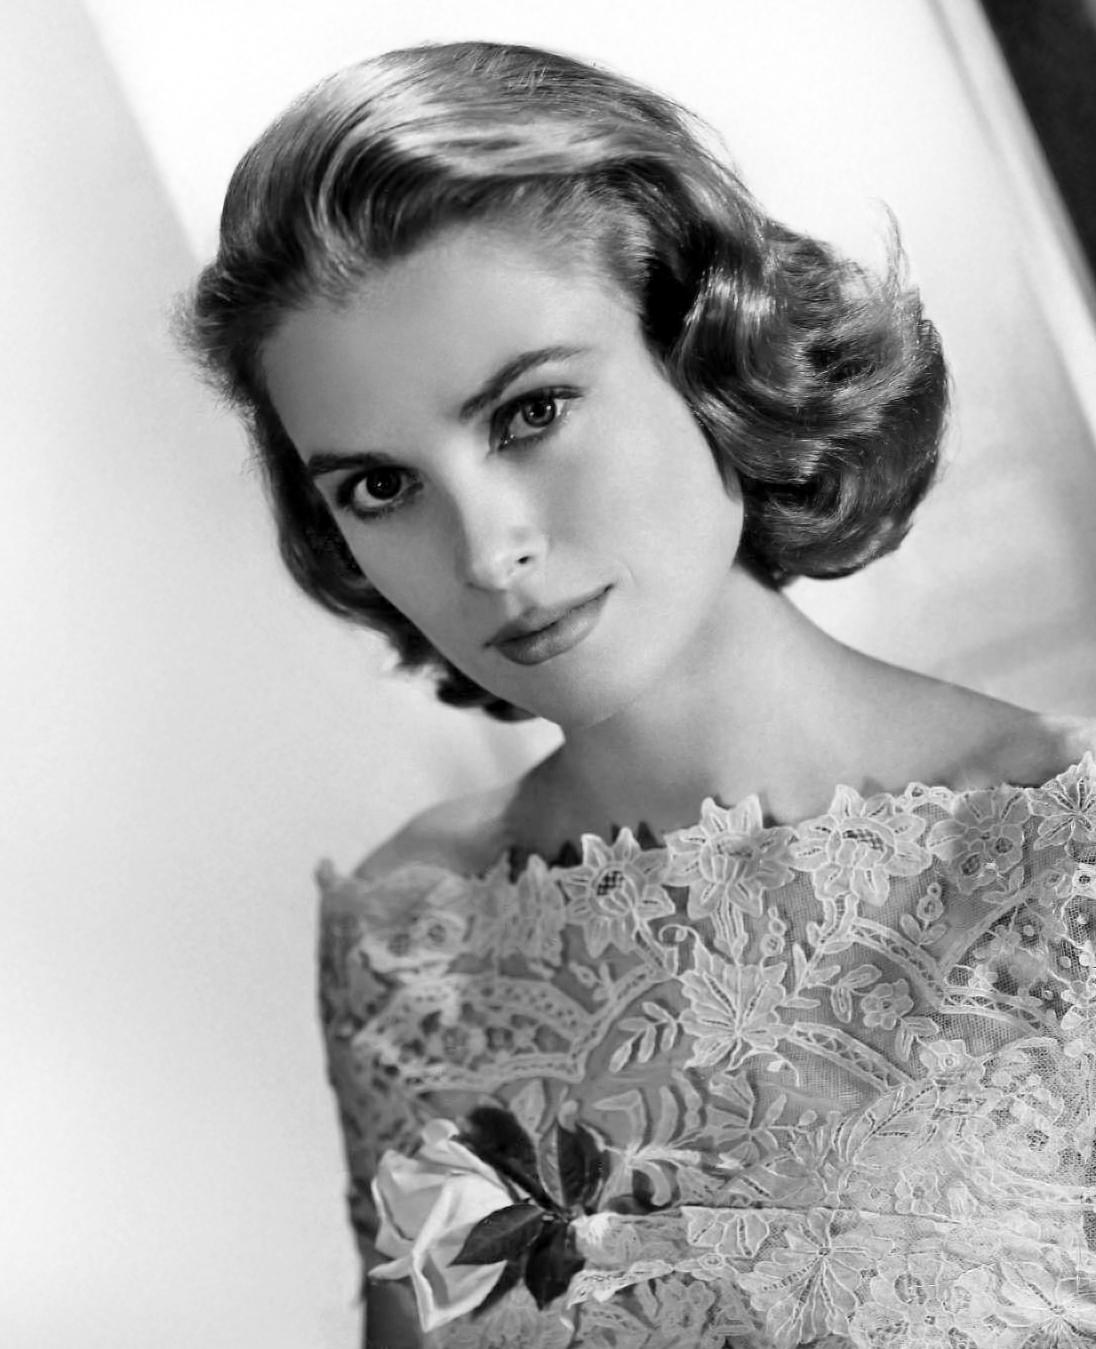 Actress Grace Kelly; 1929 - 1982 | Image Attribution: Public Domain, MGM via Wikimedia Commons